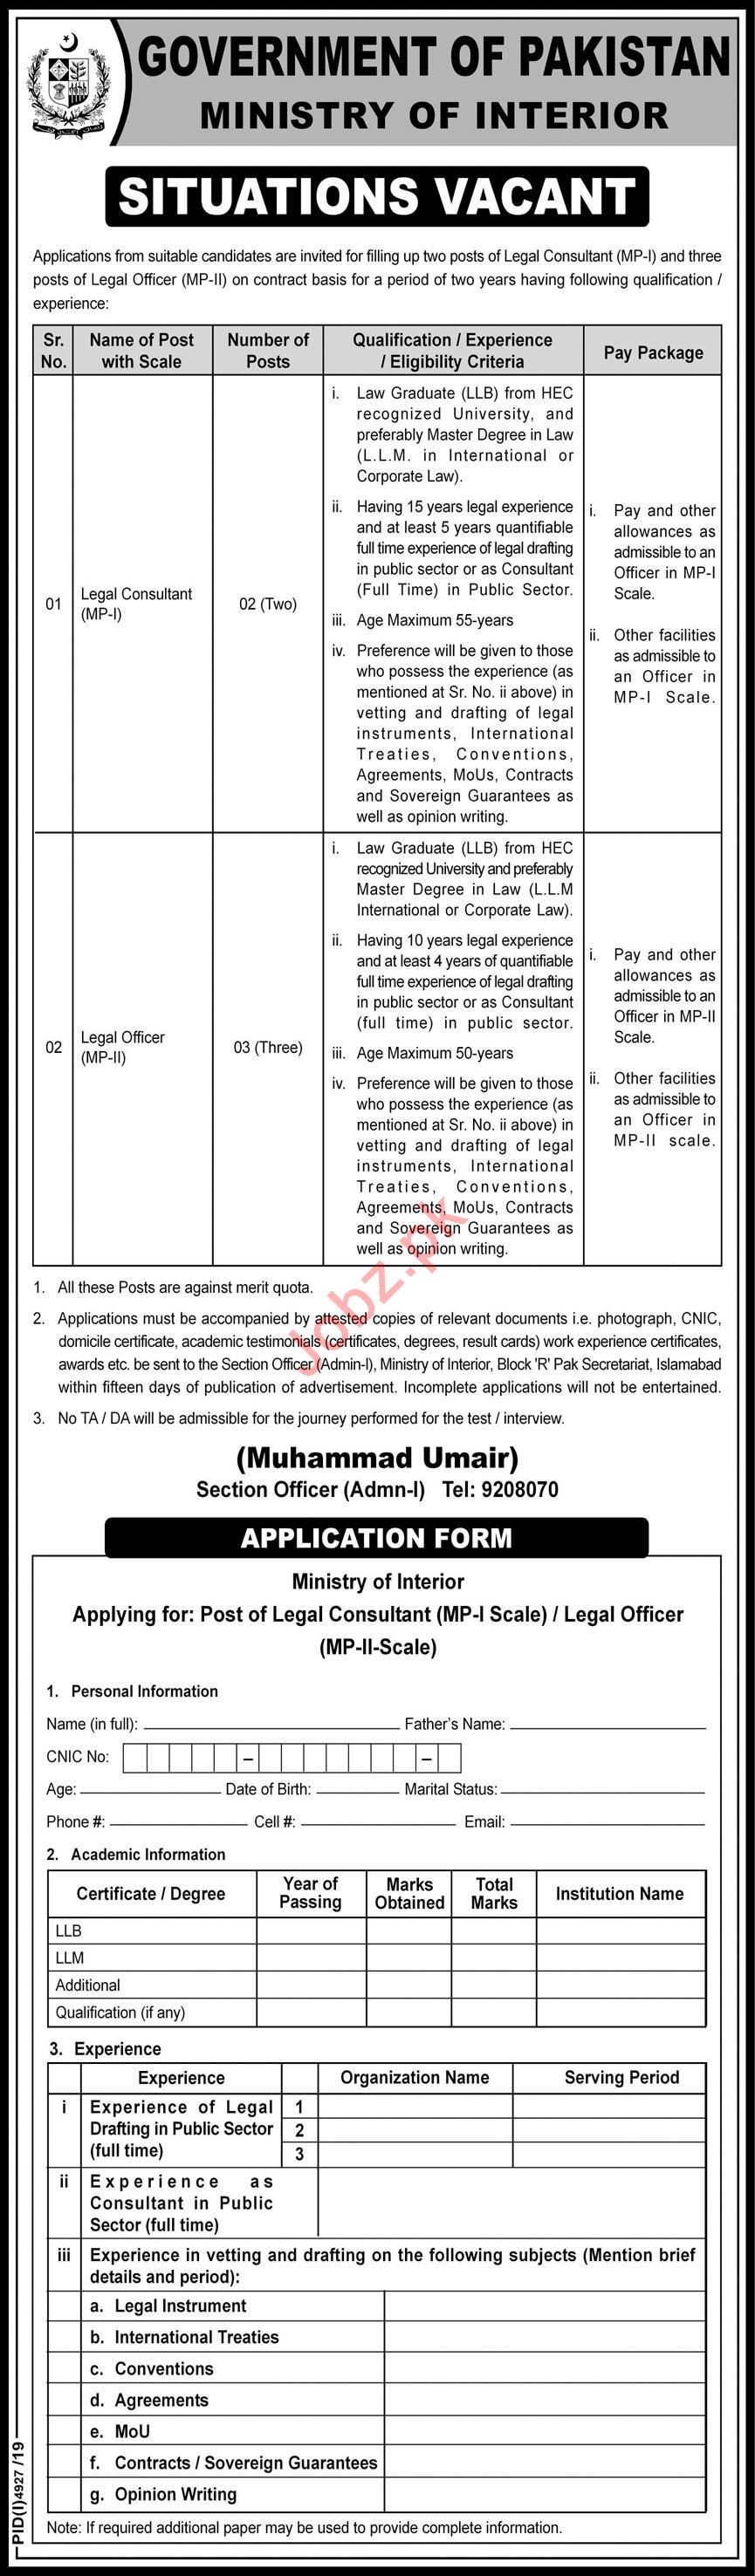 Ministry of Interior Jobs For Legal Officer & Consultant